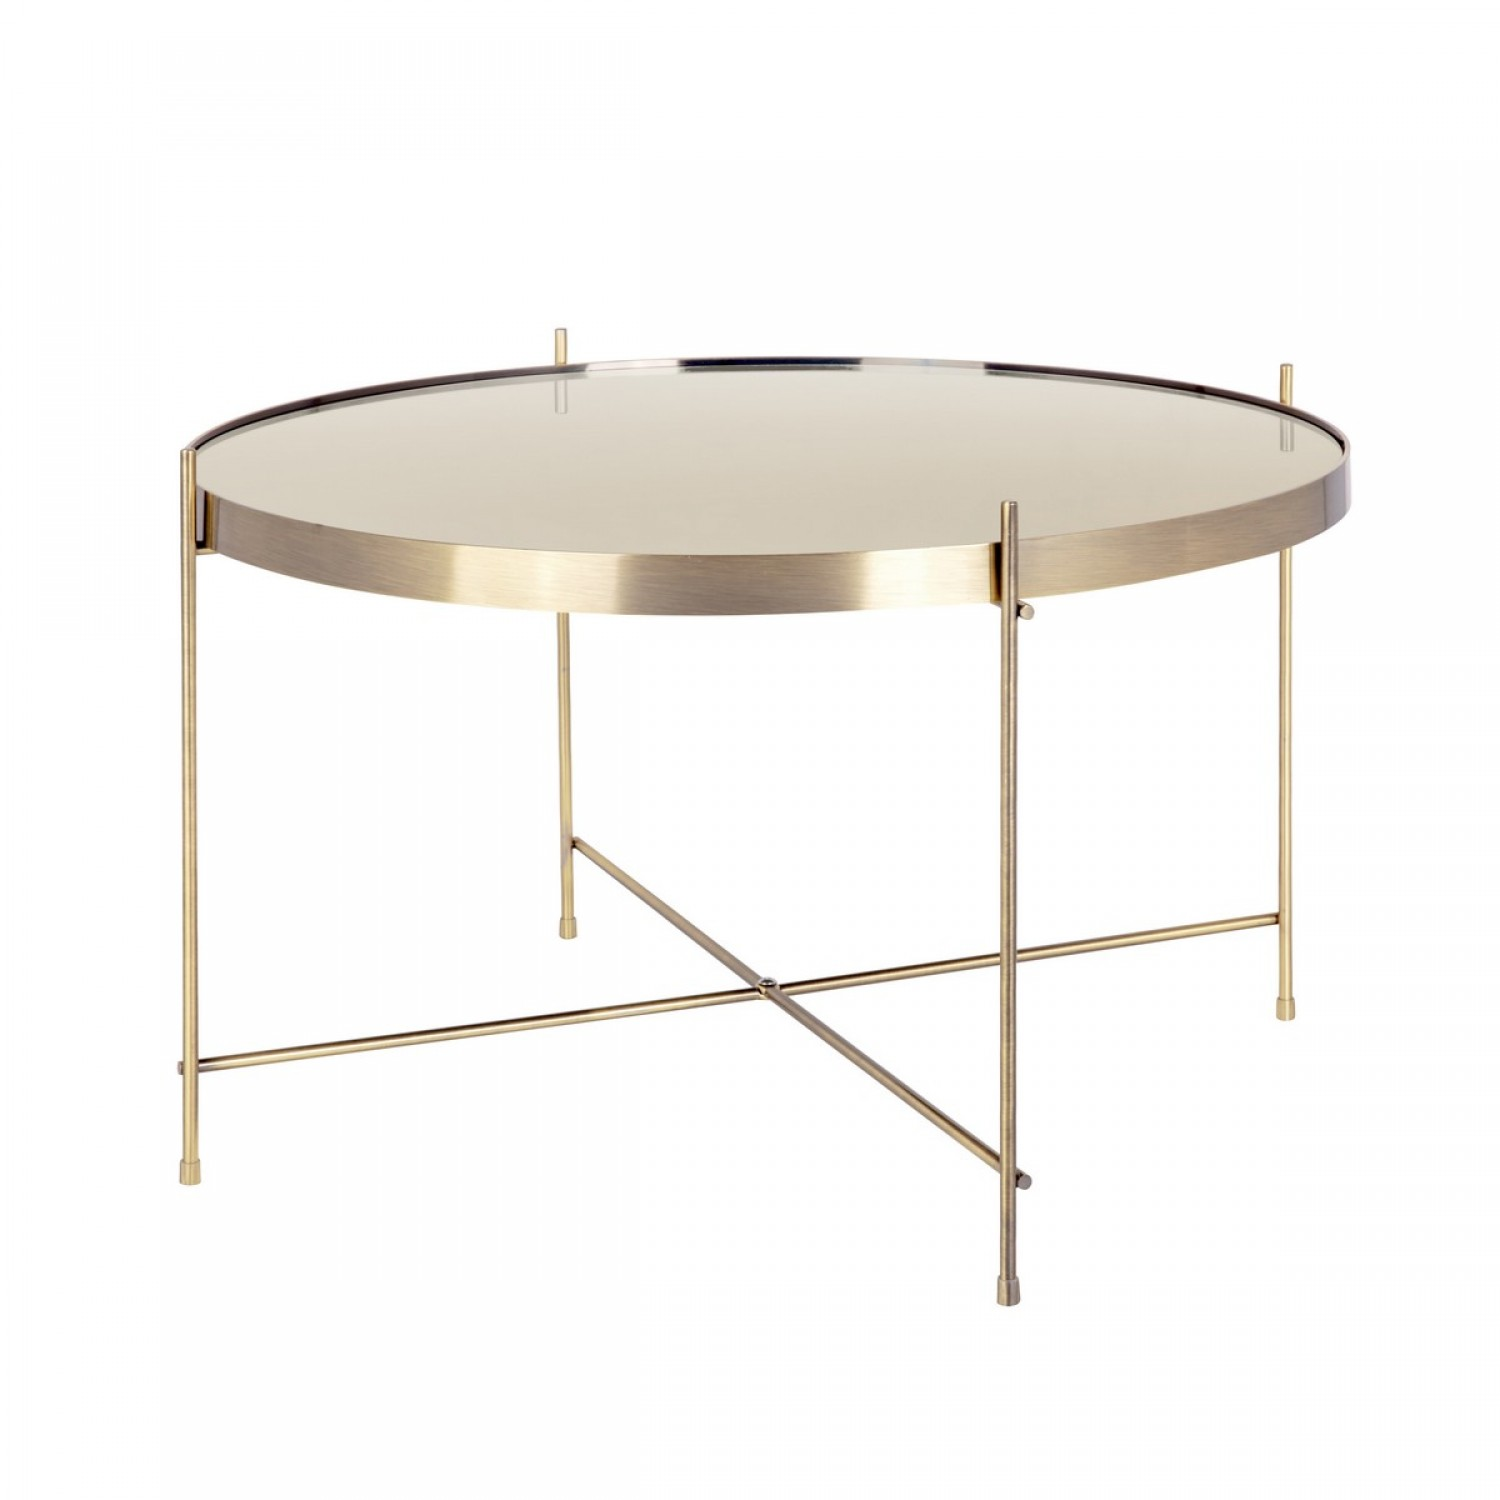 Table basse miroir laiton 64 cm koya design for Table basse miroir